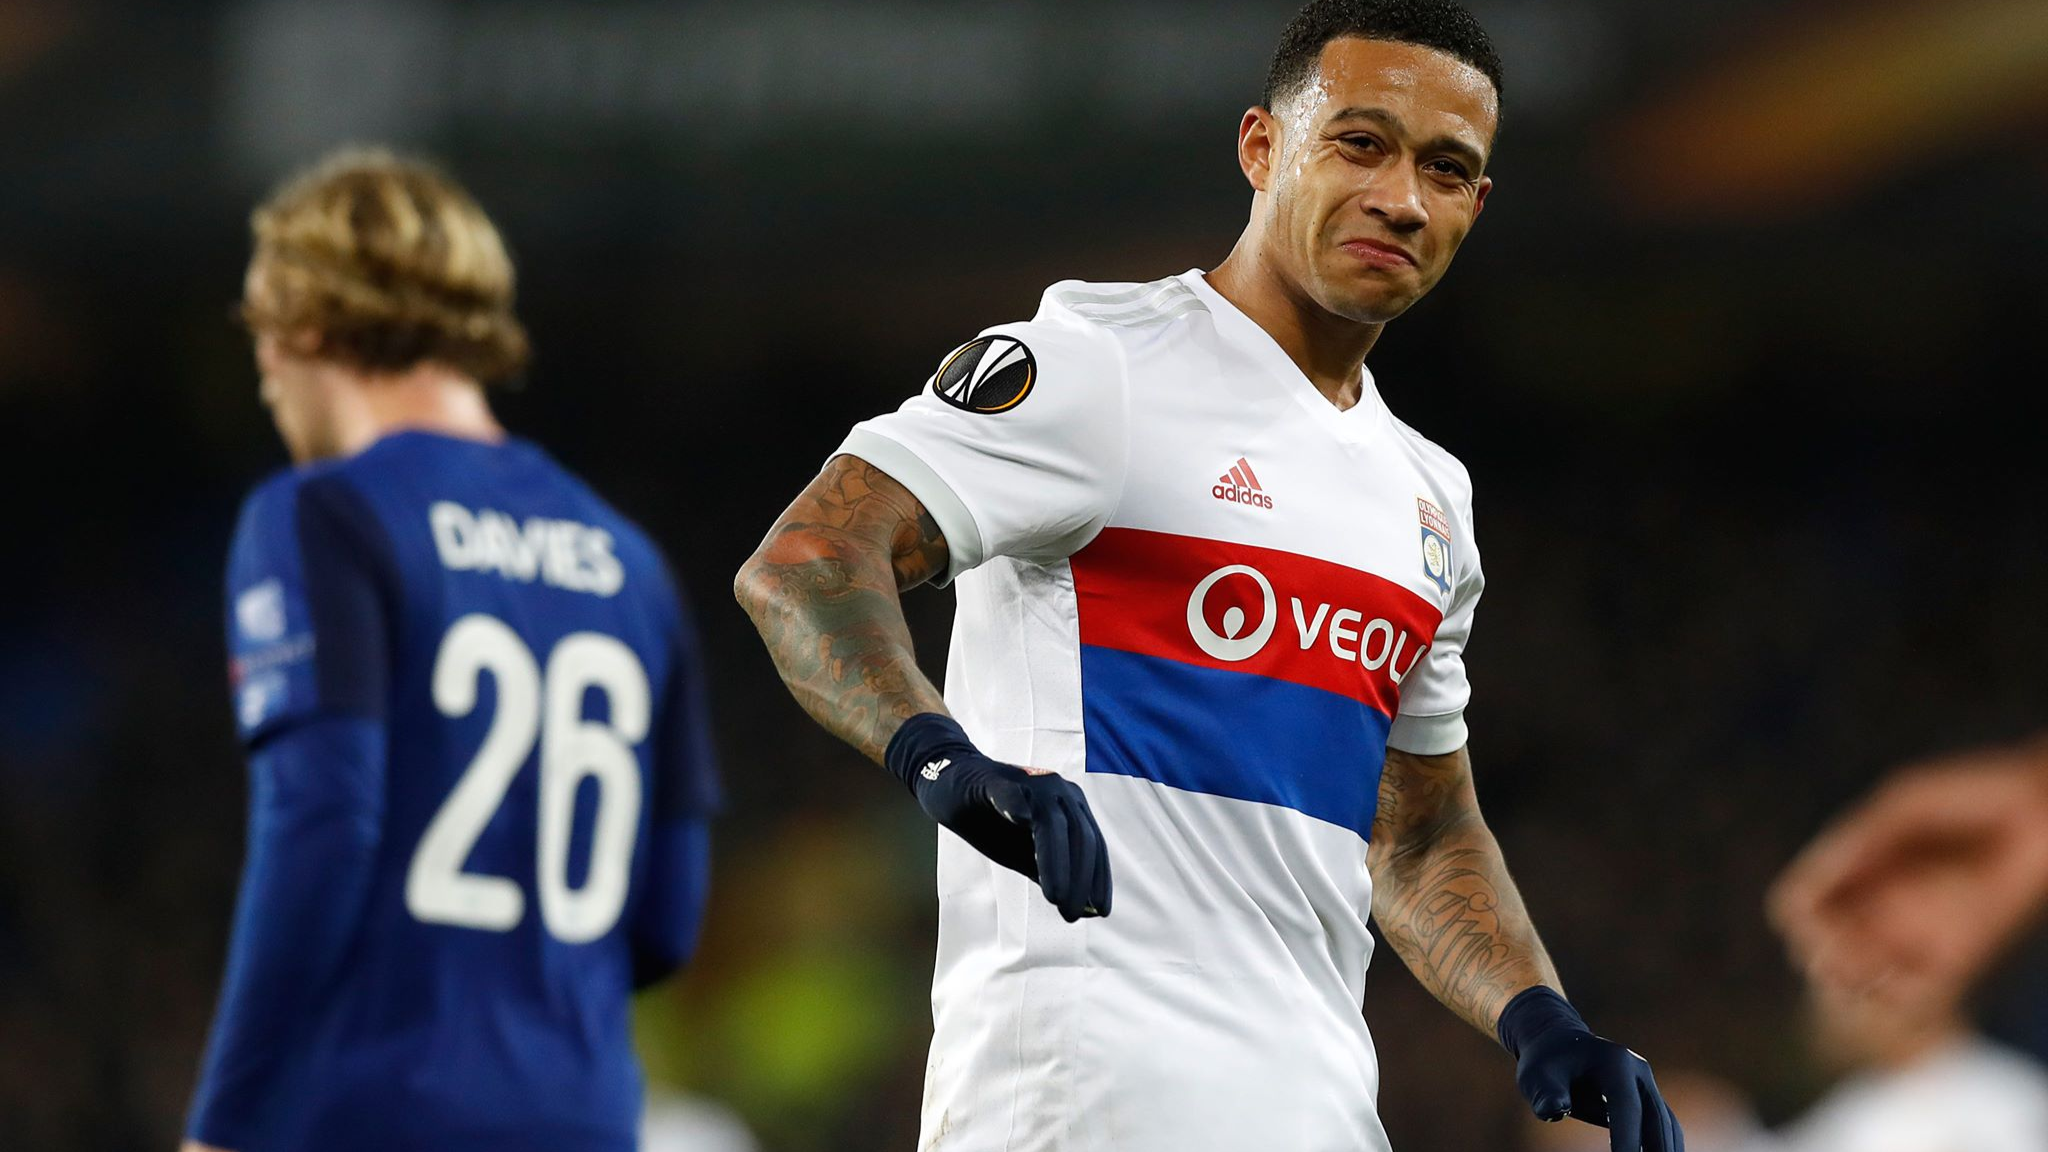 Manchester United Flop Memphis Depay Ends Stunning Season With Hat-Trick